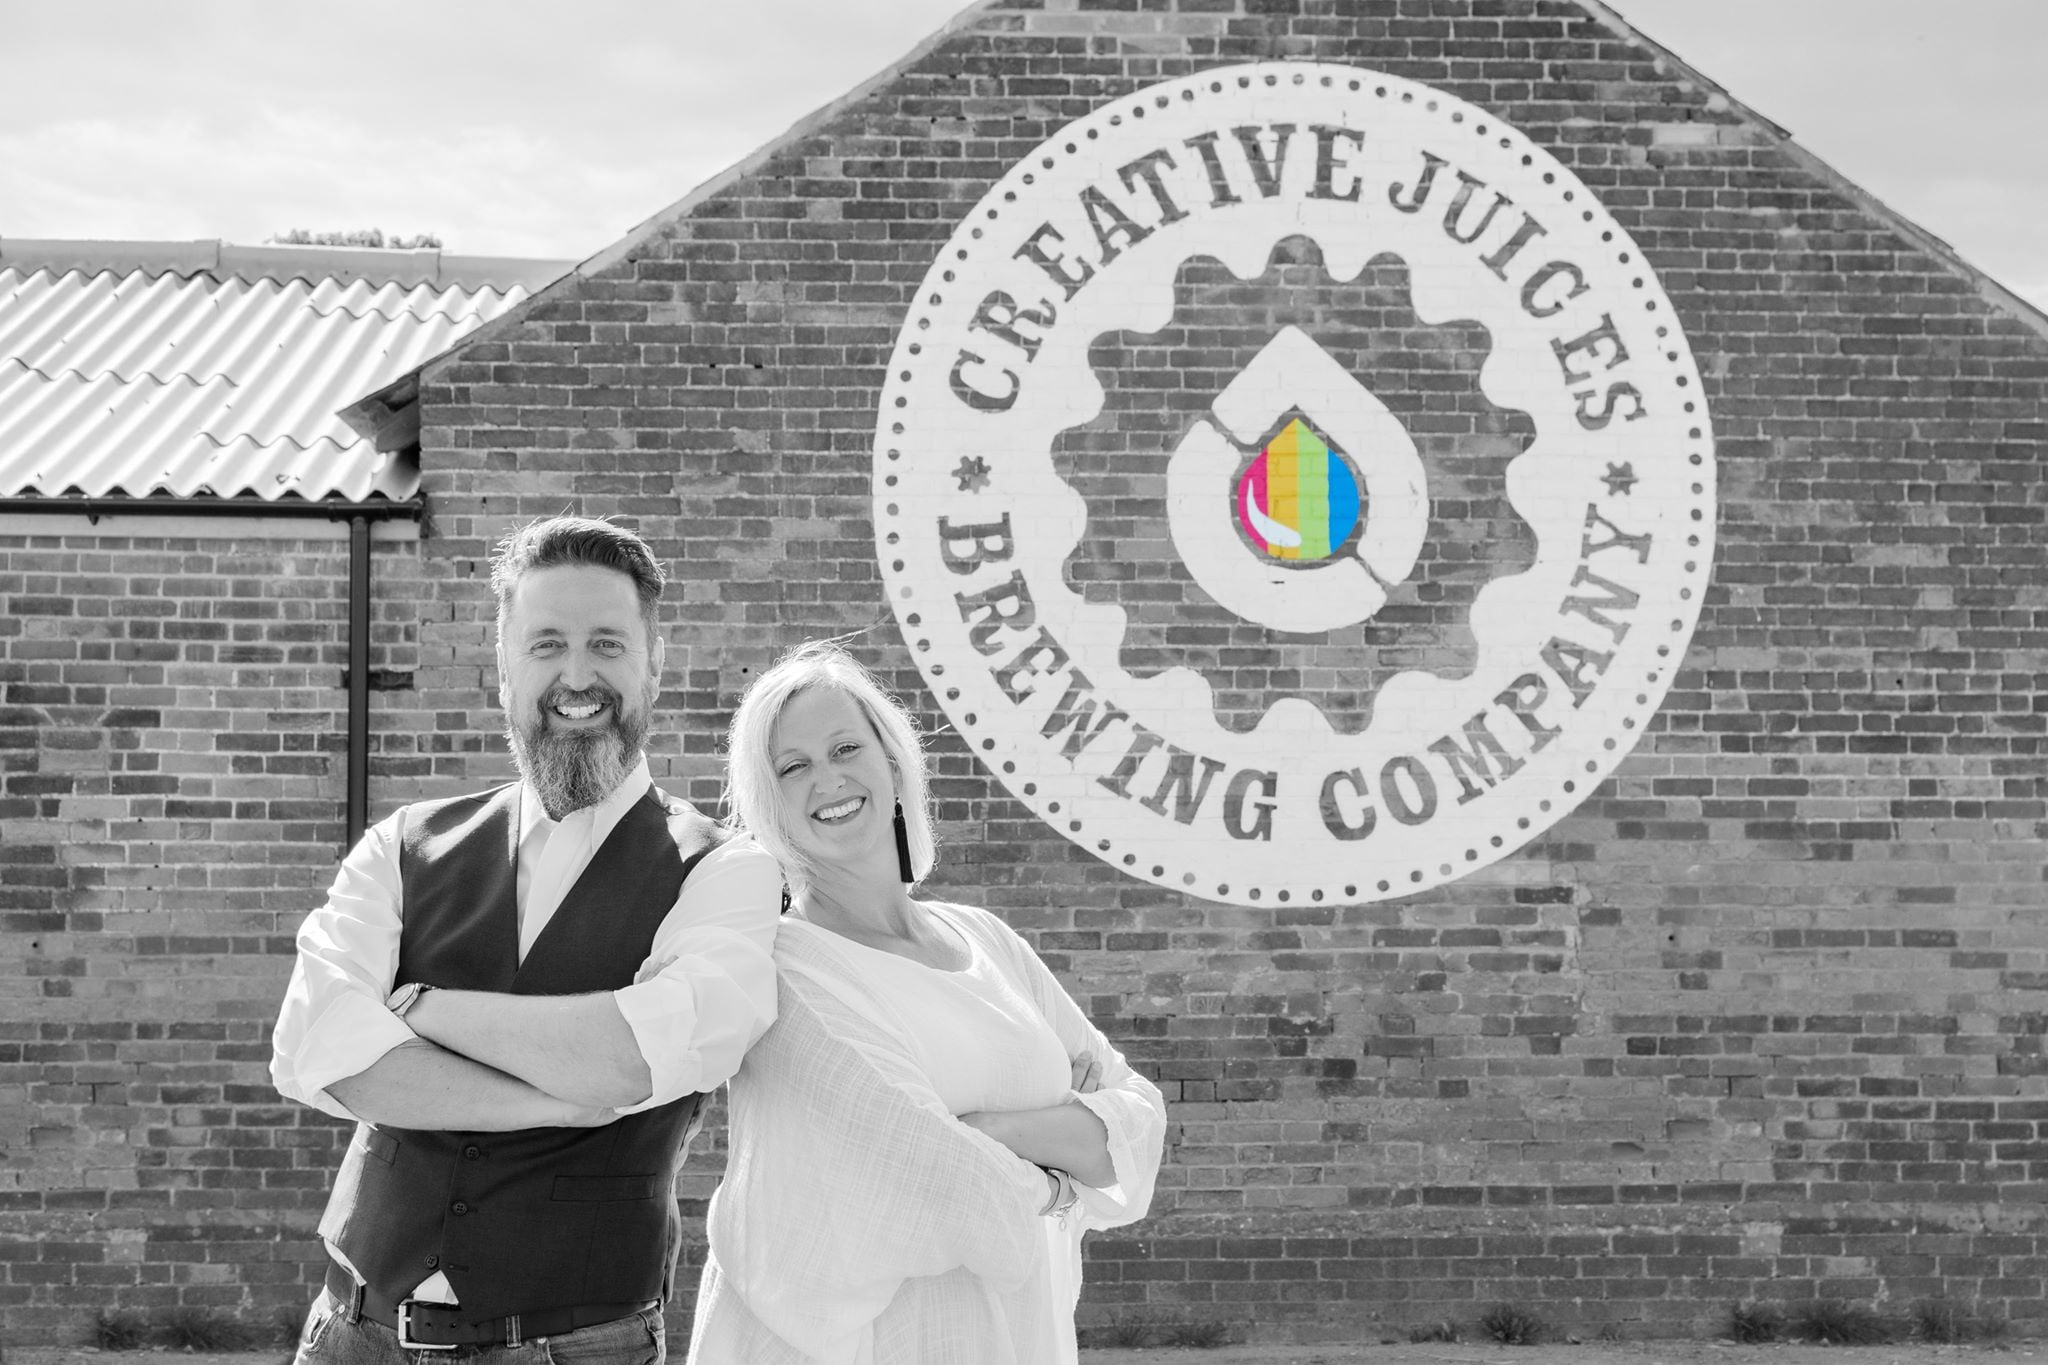 Creative Juices Brewing Company: Rickmansworth, Hertfordshire